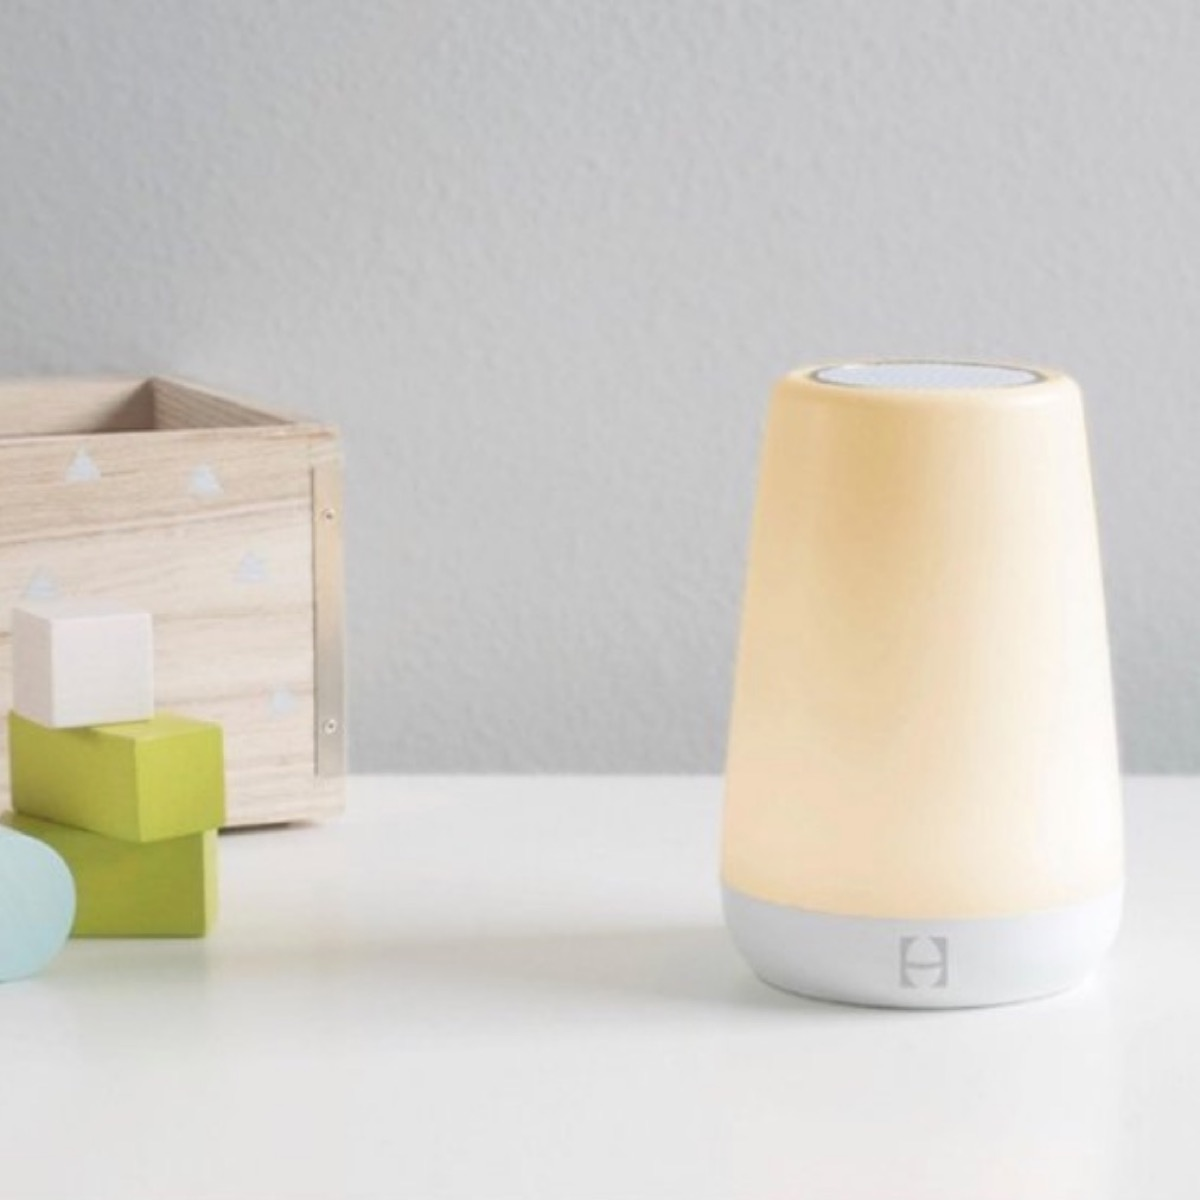 yellow night light and wooden box on white counter top